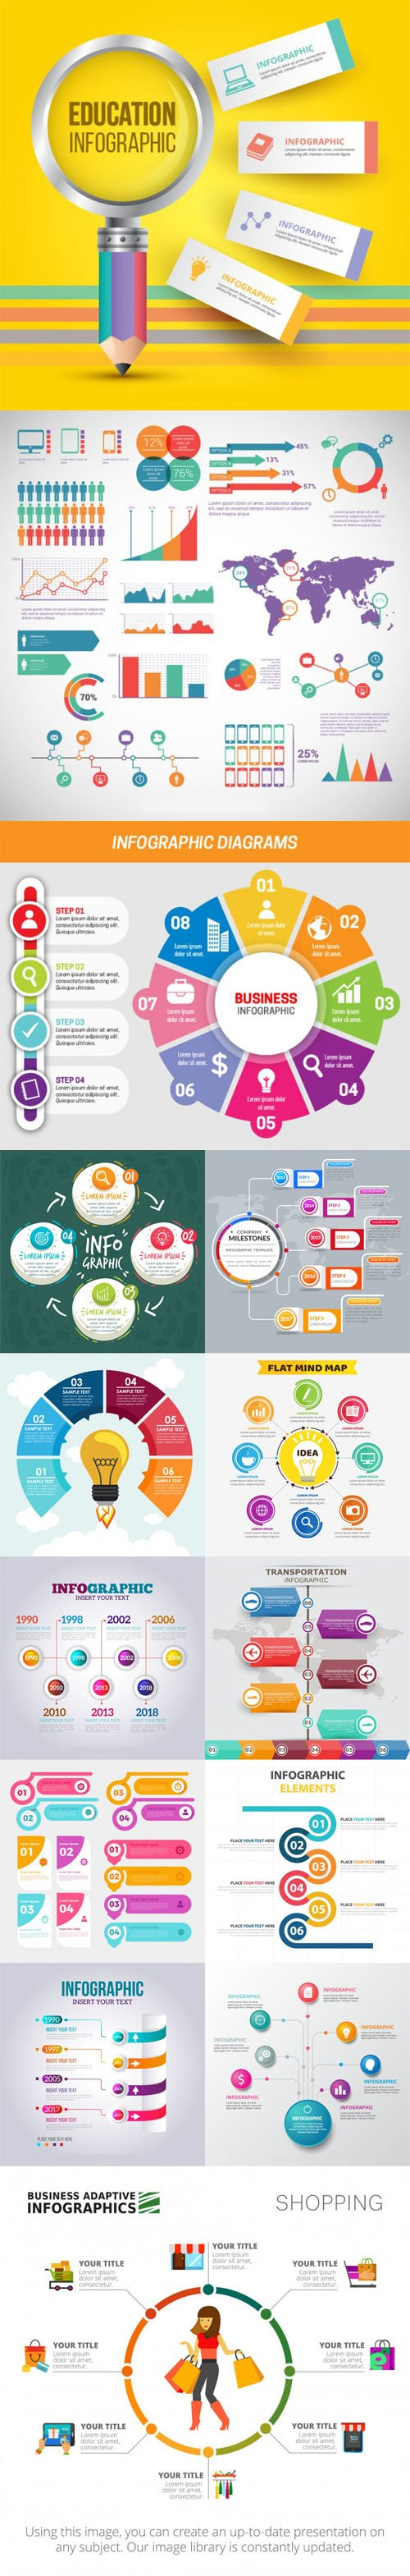 14 Infographic Templates Pack Design Vector